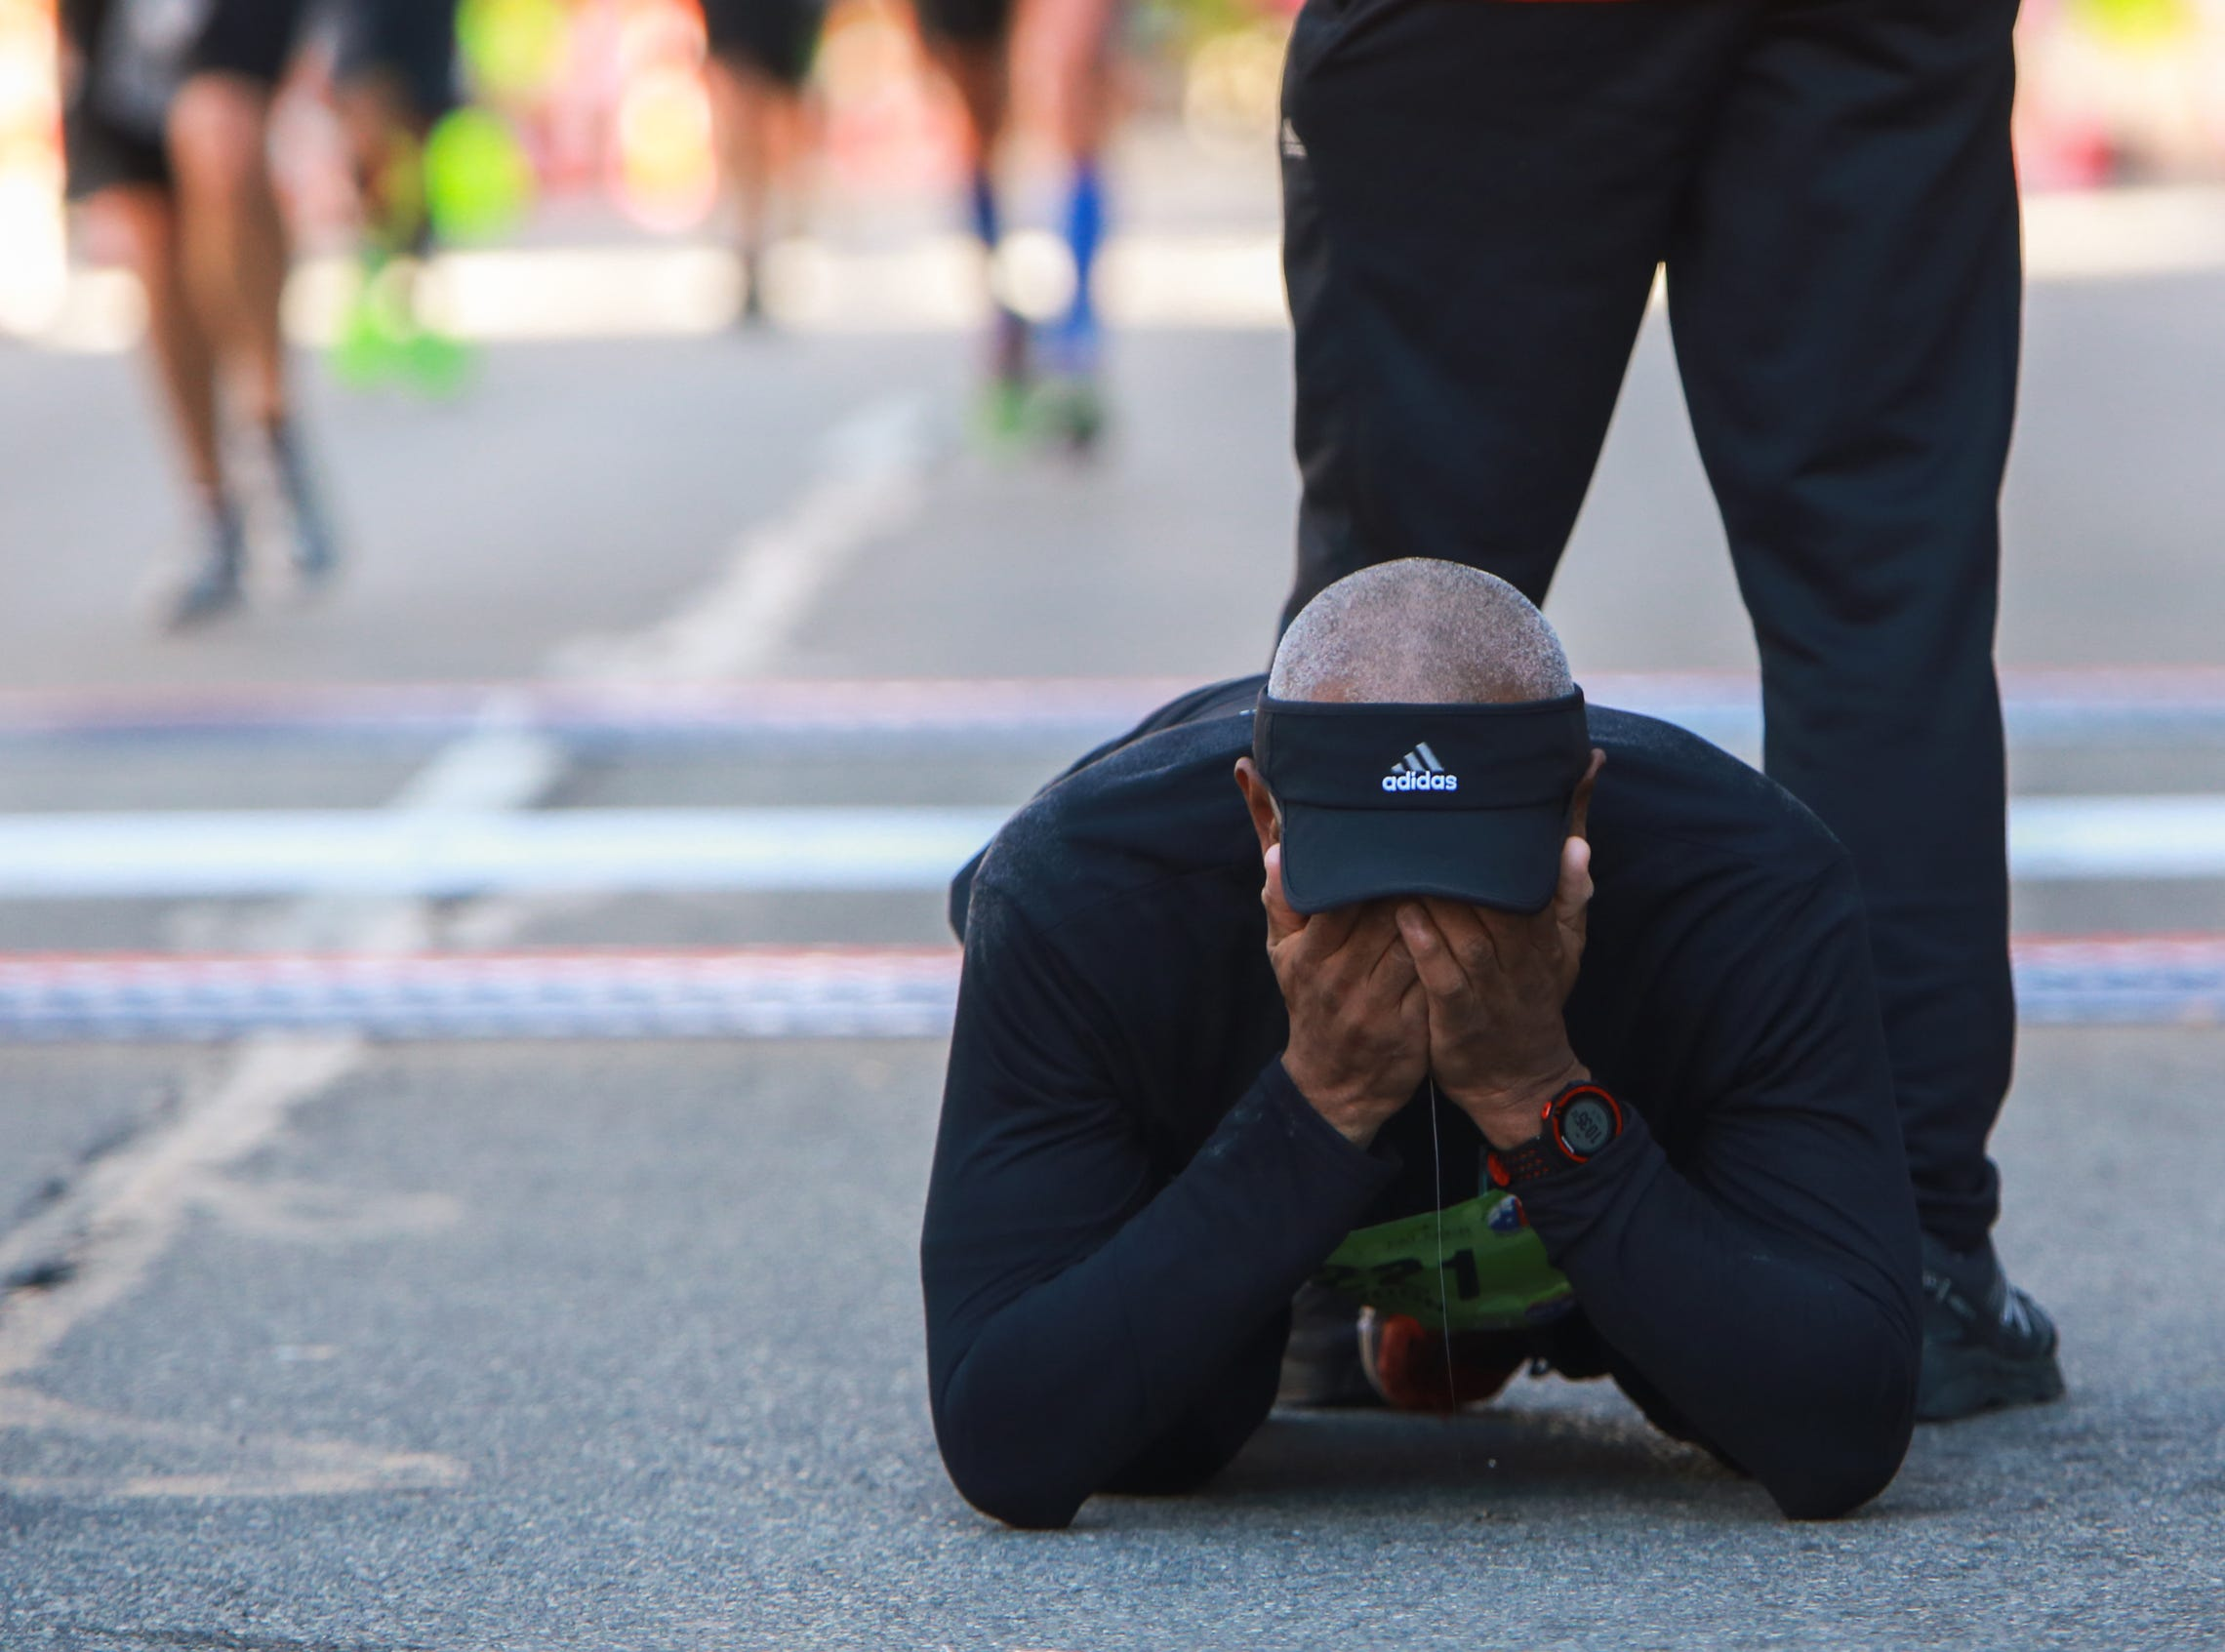 Lyndon Marsalis of Westland, gets emotional after crossing the finish line in downtown Detroit during his first full marathon during the 38th Annual Detroit Free Press/Talmer Bank Marathon on Sunday, Oct. 18, 2015.